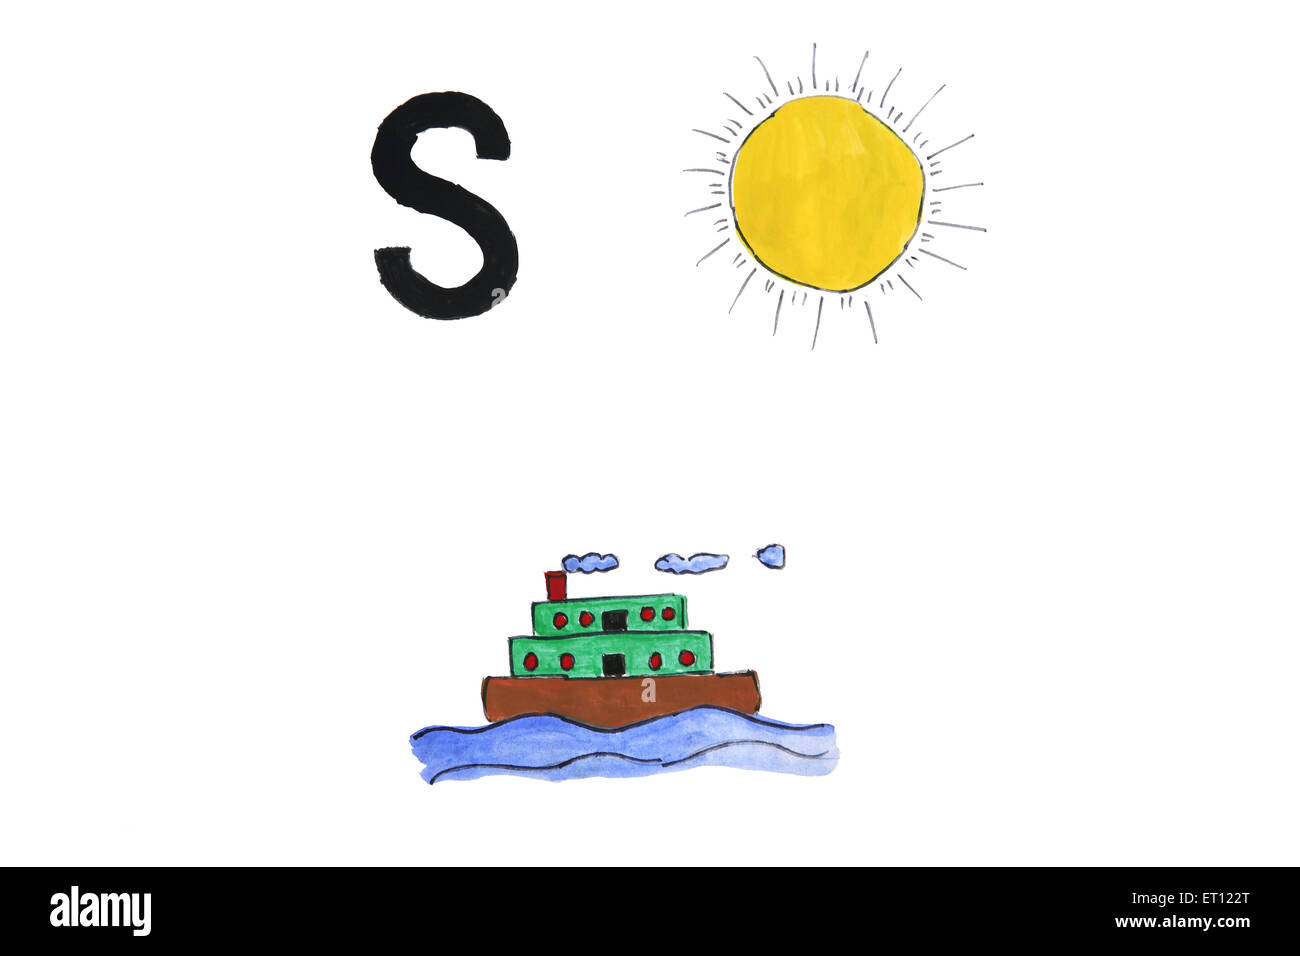 Watercolour painting of alphabet s with ship and sun - Stock Image